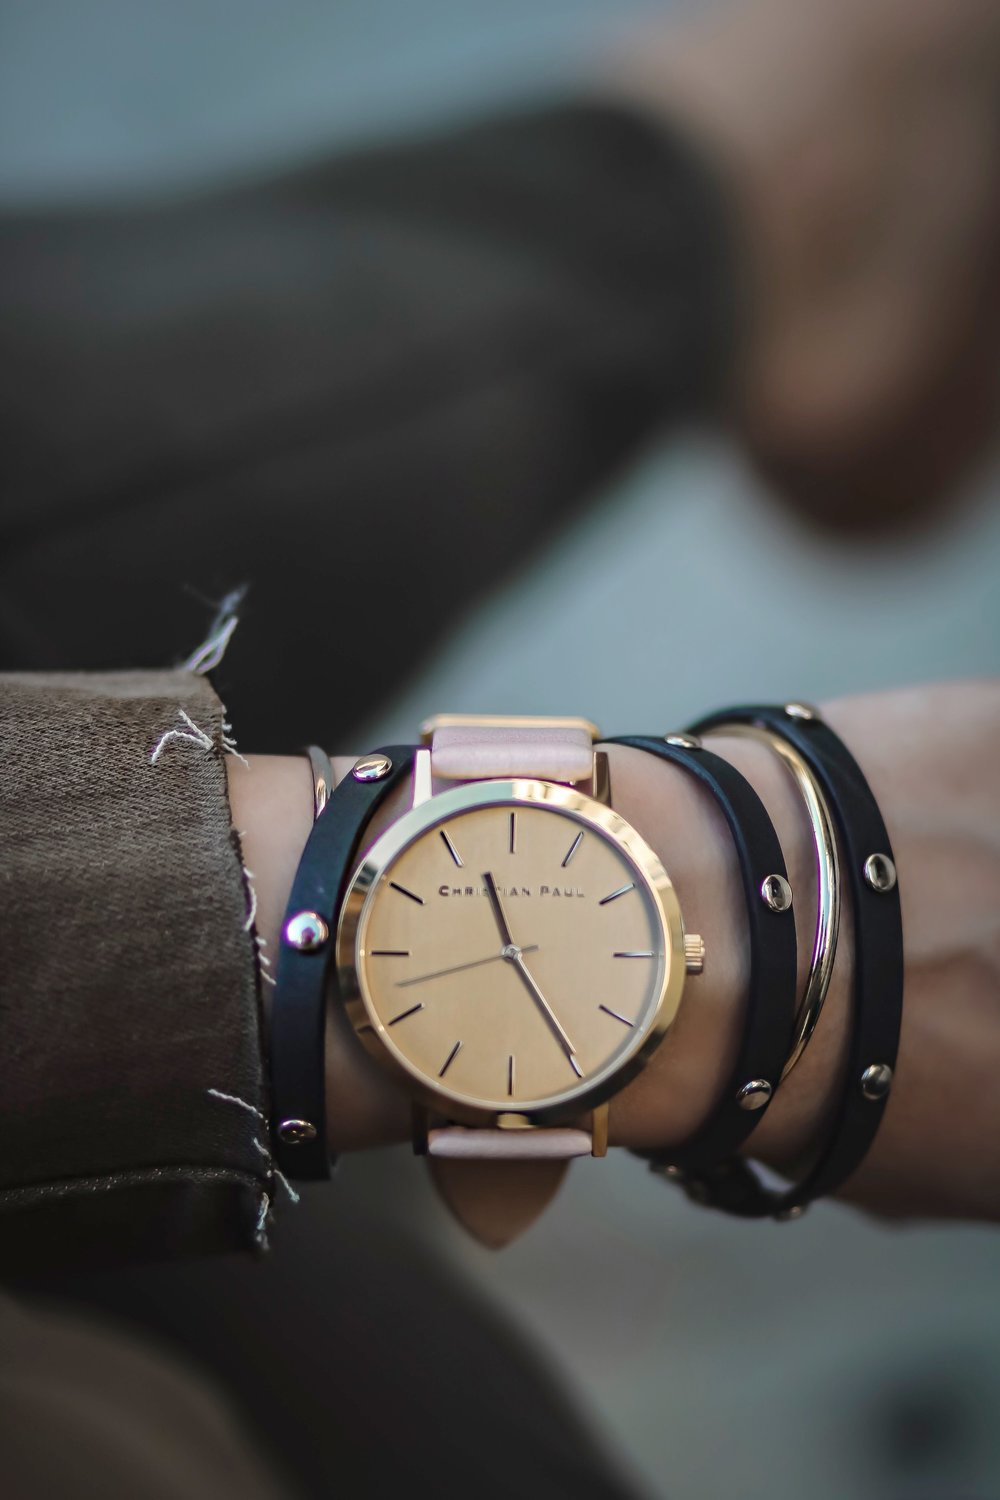 christian-paul-gold-watch-bloggerstyle